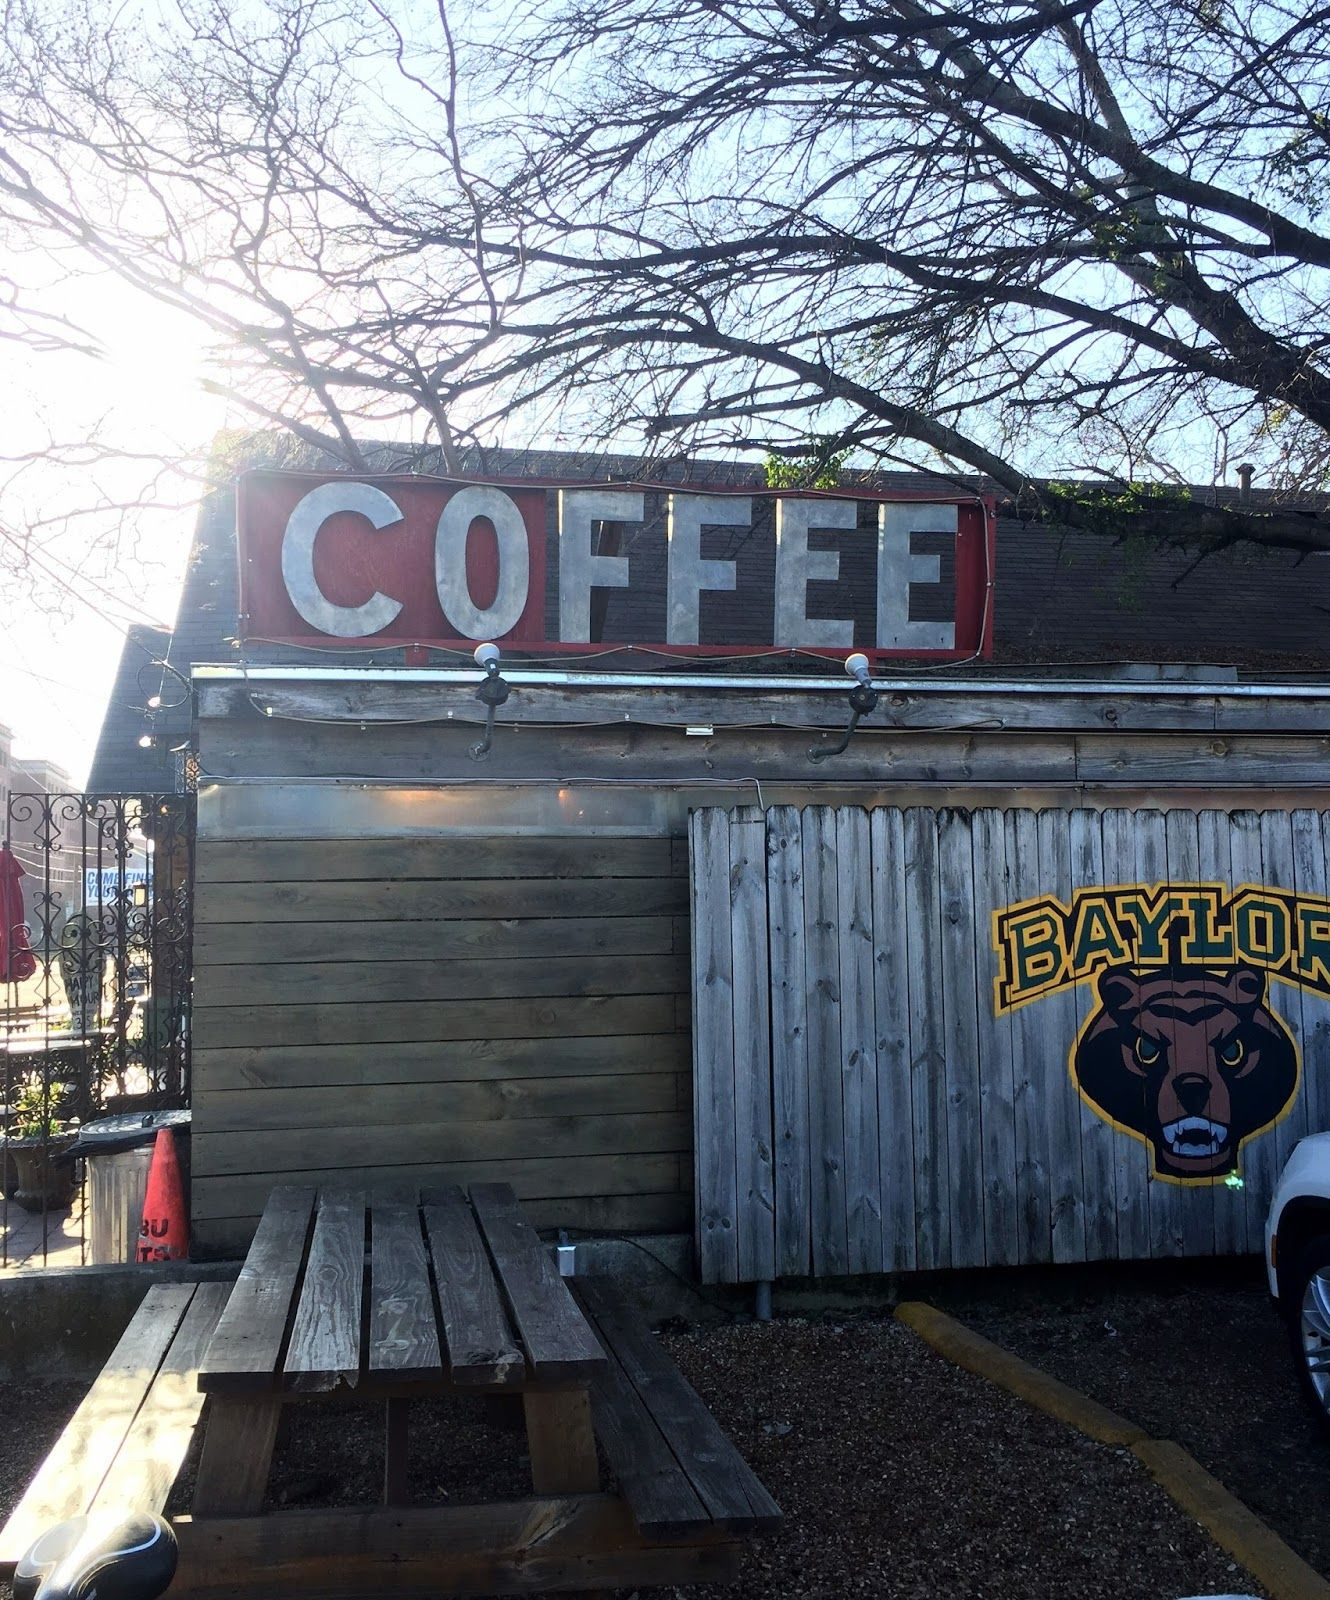 common grounds coffee on baylor university campus in waco, texas